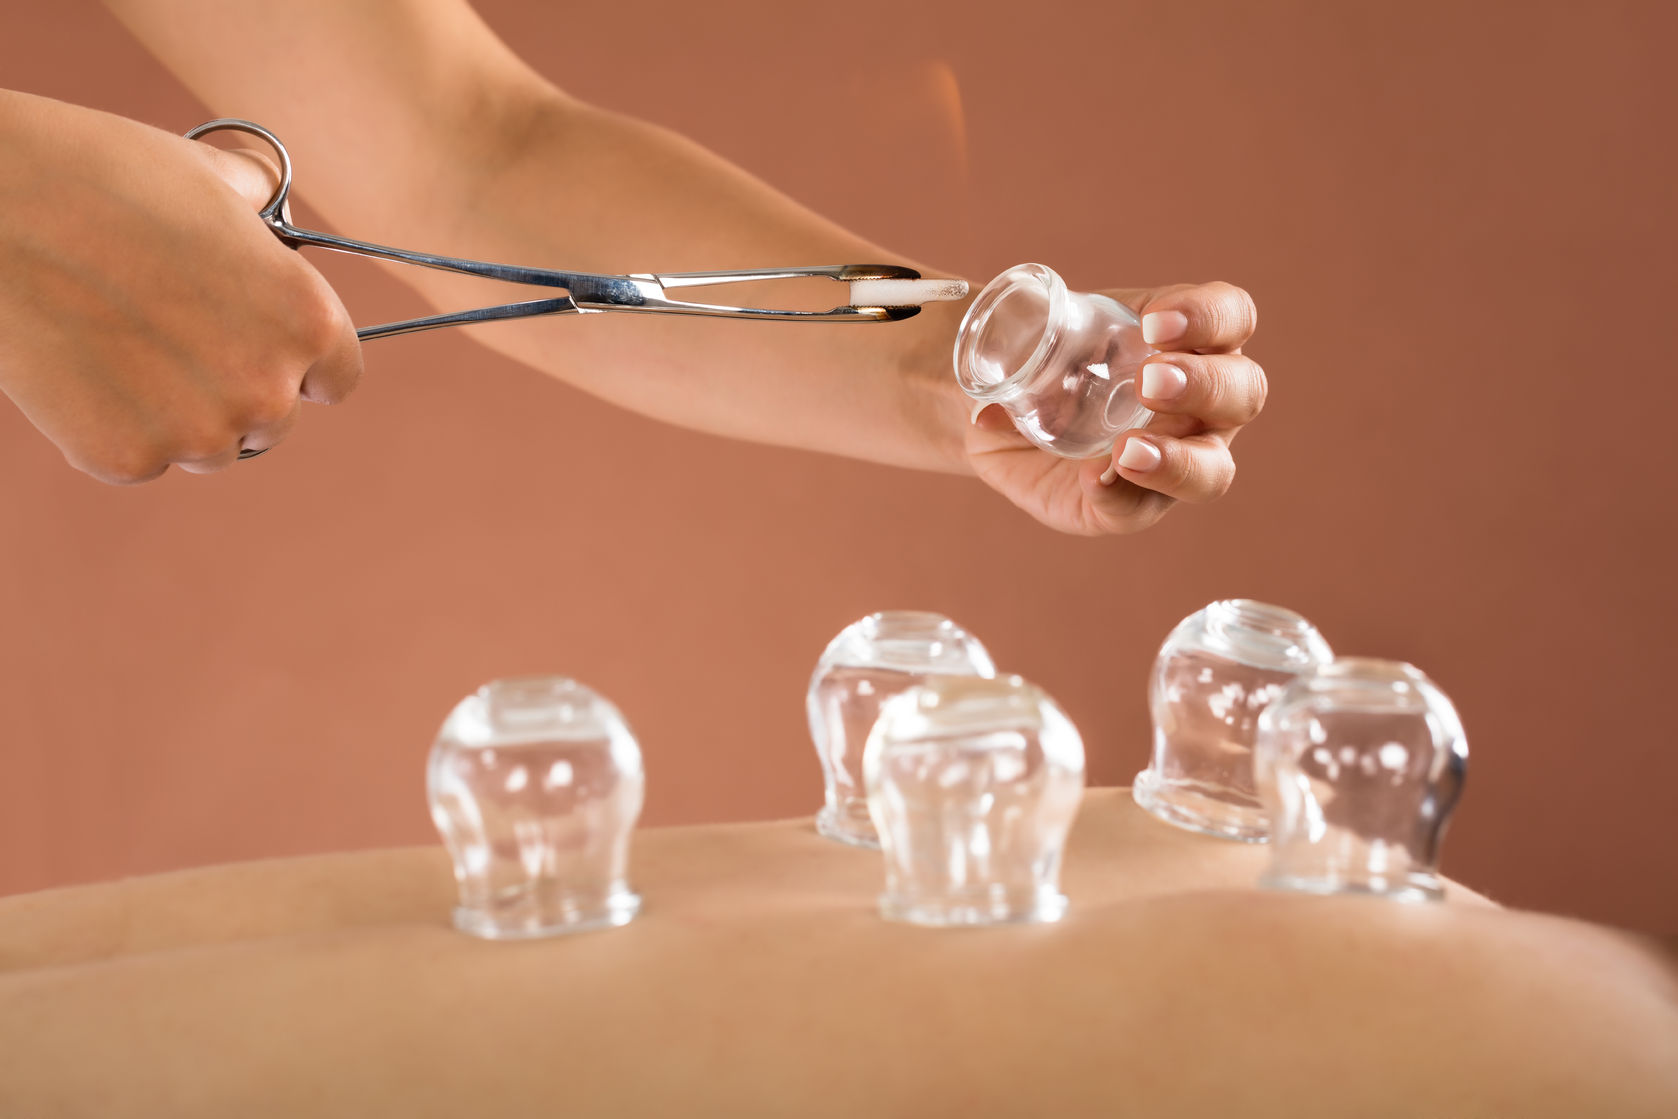 65319923 - close-up of a therapist giving cupping therapy to man in spa